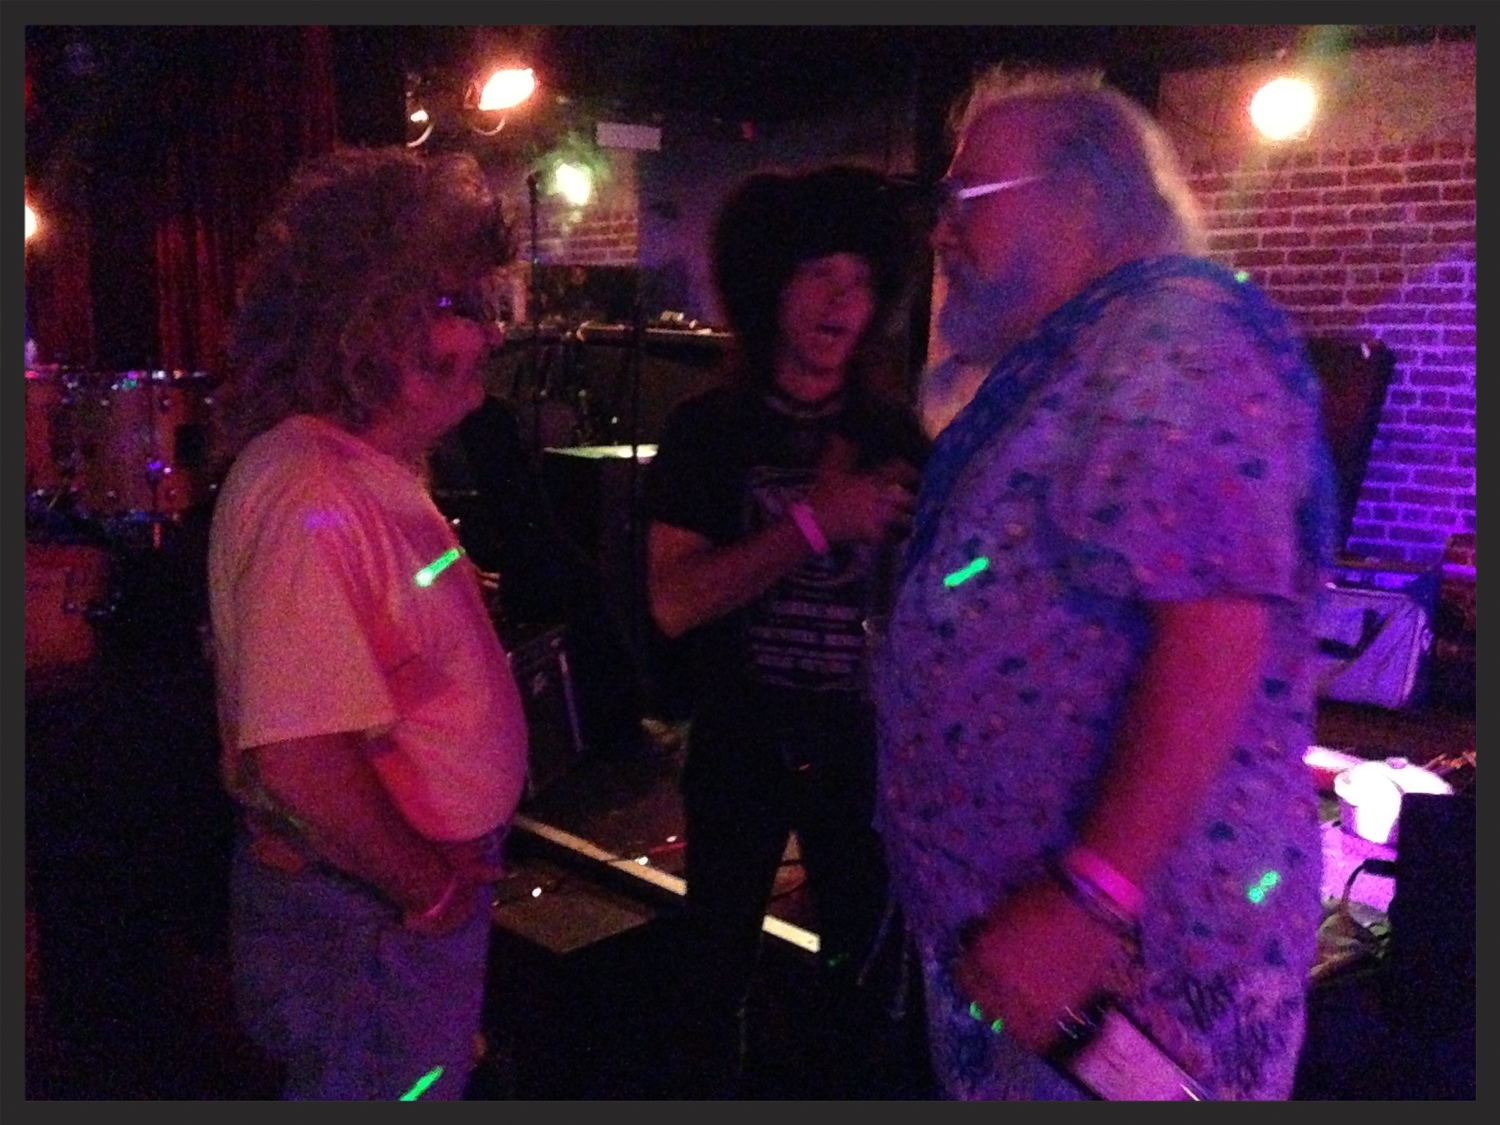 Gary Wilson, Don Bolles, and R. Stevie Moore conversing at at the 2014 Burger Records Labor Day mini-fest.  *Update (2/10/2015) It's been brought to my attention by Jeff Winner and R. Stevie Moore that it is unreasonable to suggest that Moore or Wilson could have paved the way for the Residents, and I would like to express my agreement on this. While the band was in fact admirers of Gary, they were already well on their creative path by the time they were aware of Gary's music.